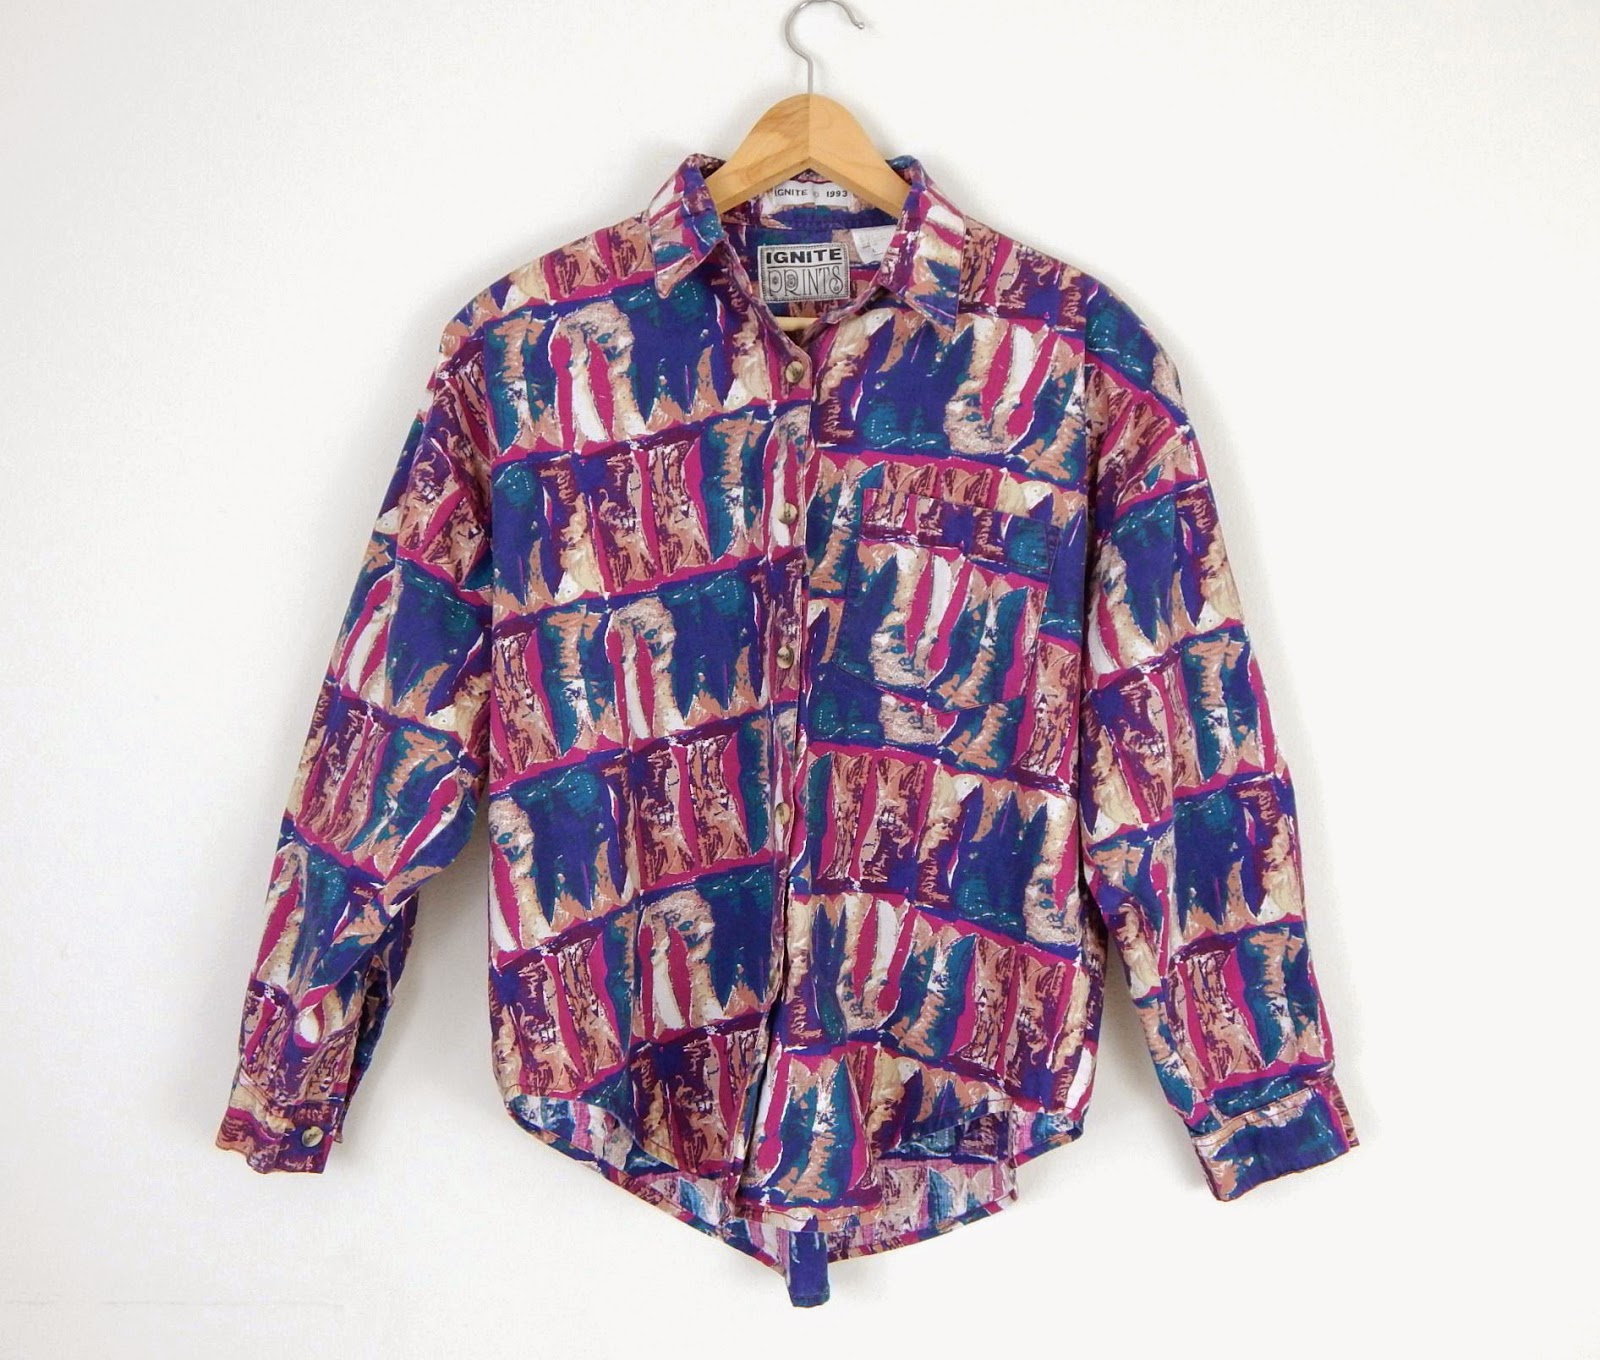 https://www.etsy.com/listing/208789066/vintage-90s-oversize-button-up-collared?ref=shop_home_active_6